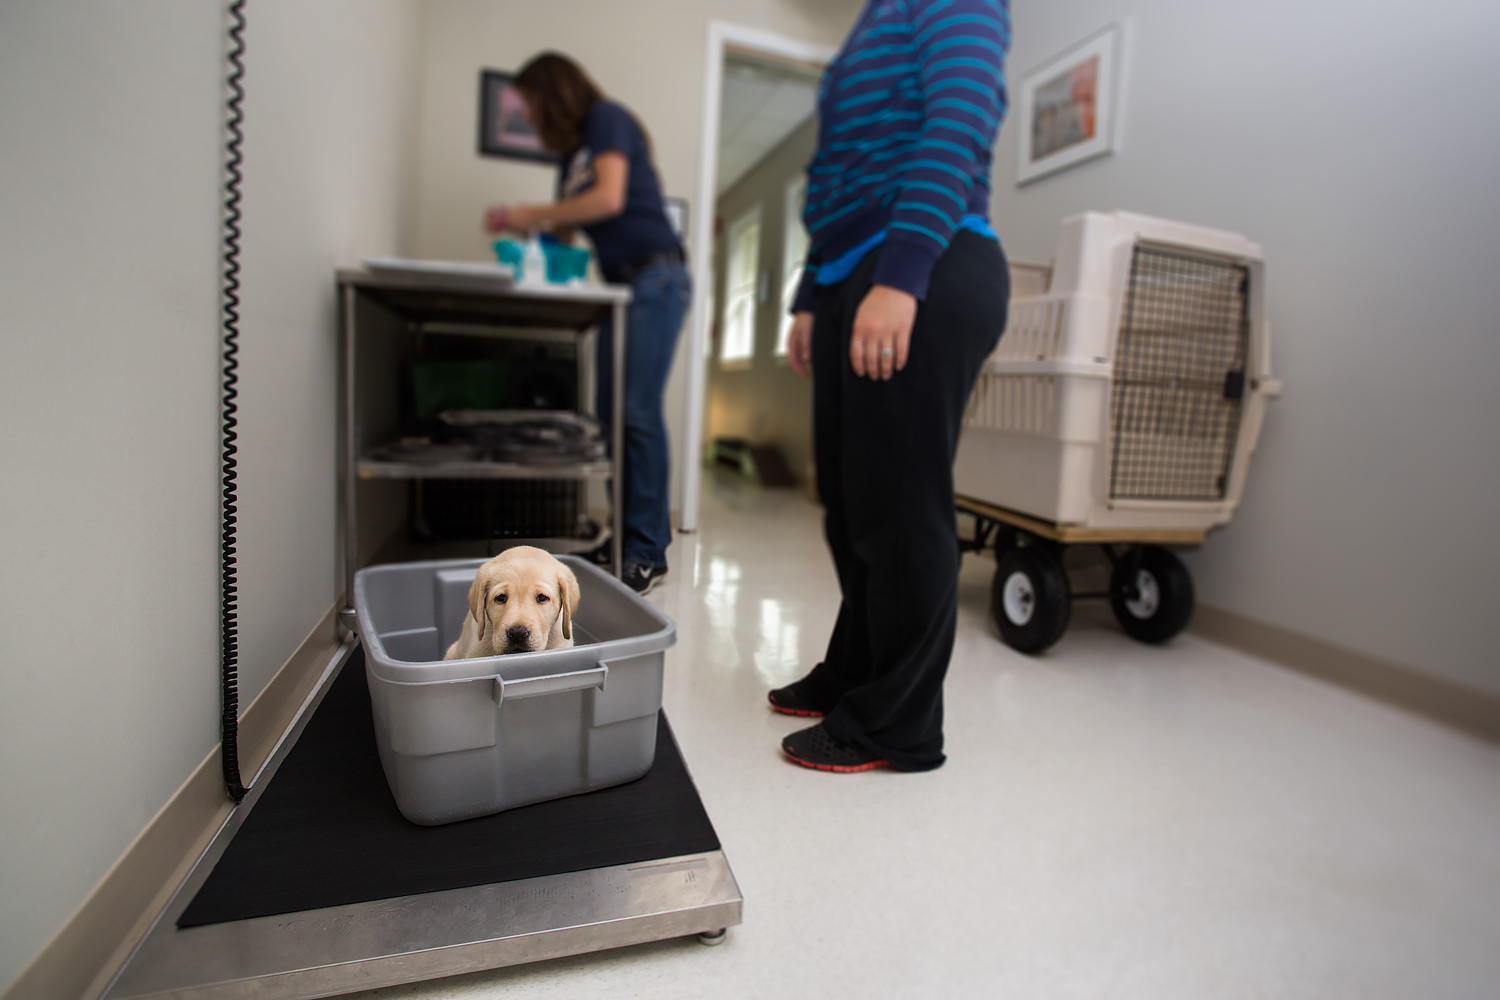 Guiding Eyes pup sits in a tupperware awaiting weigh in.